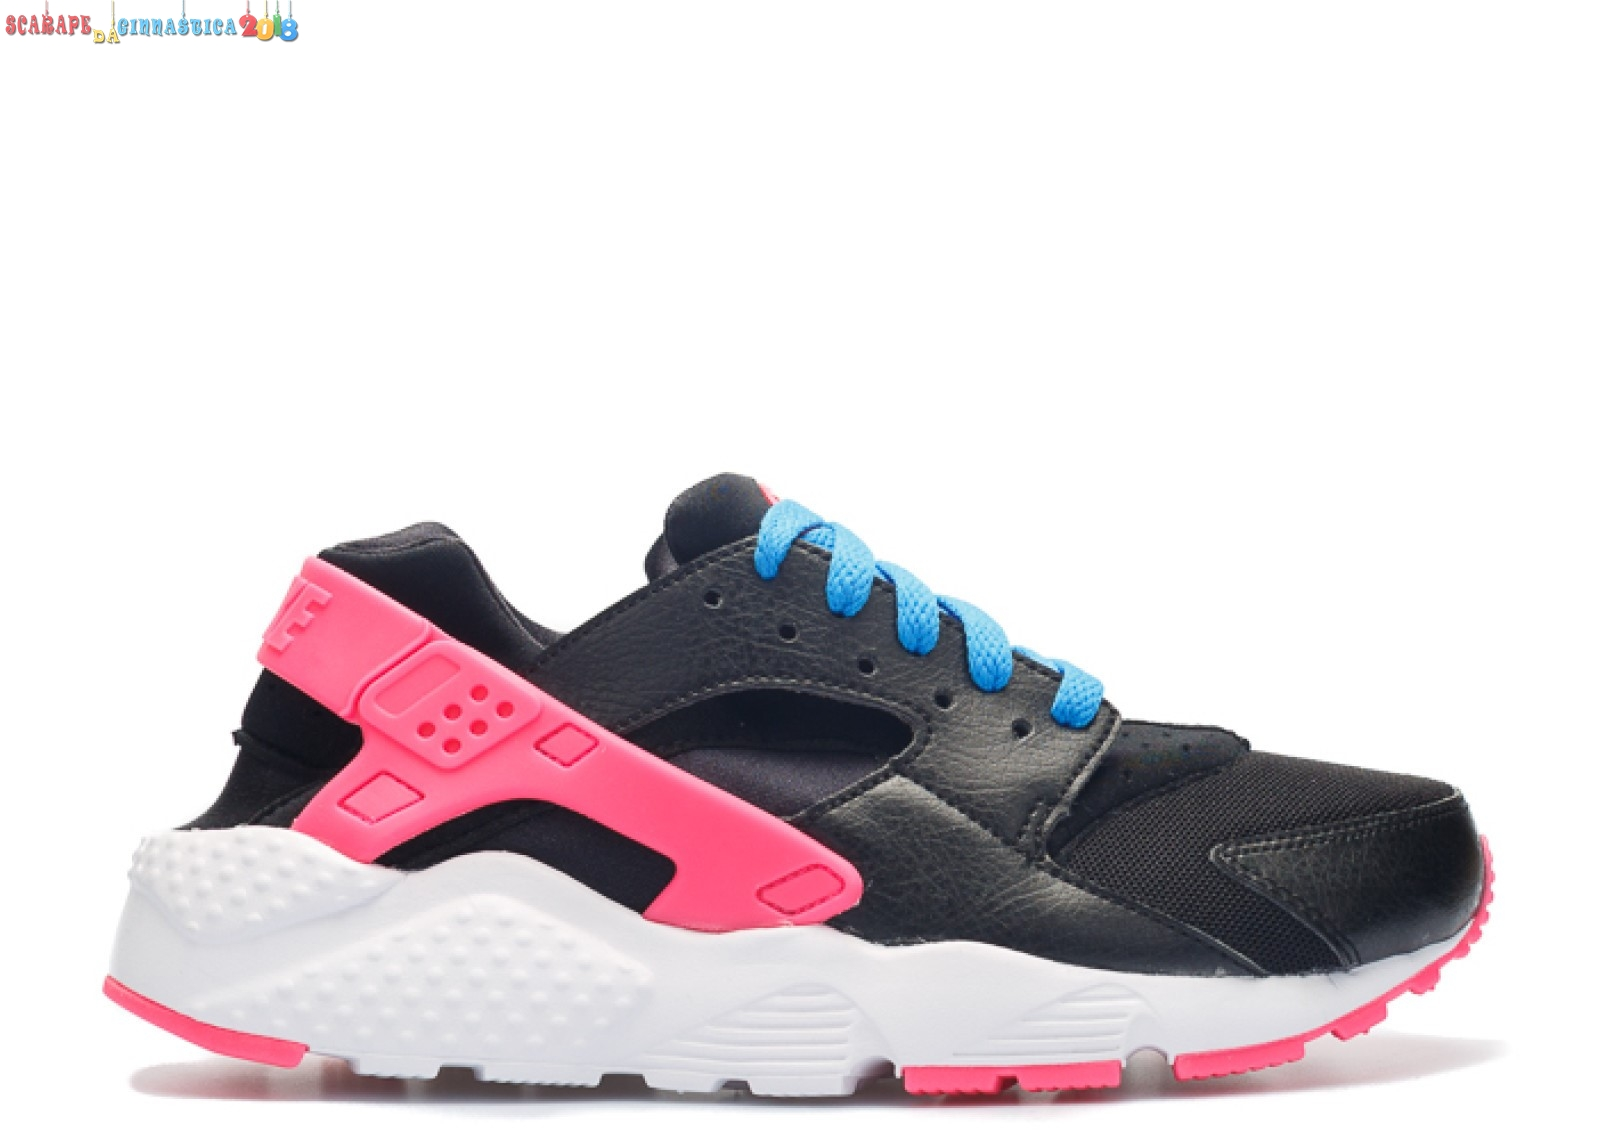 Replica Nike Air Huarache Run (Gs) Nero Rosa (654280-004) - SCARPE BASKET